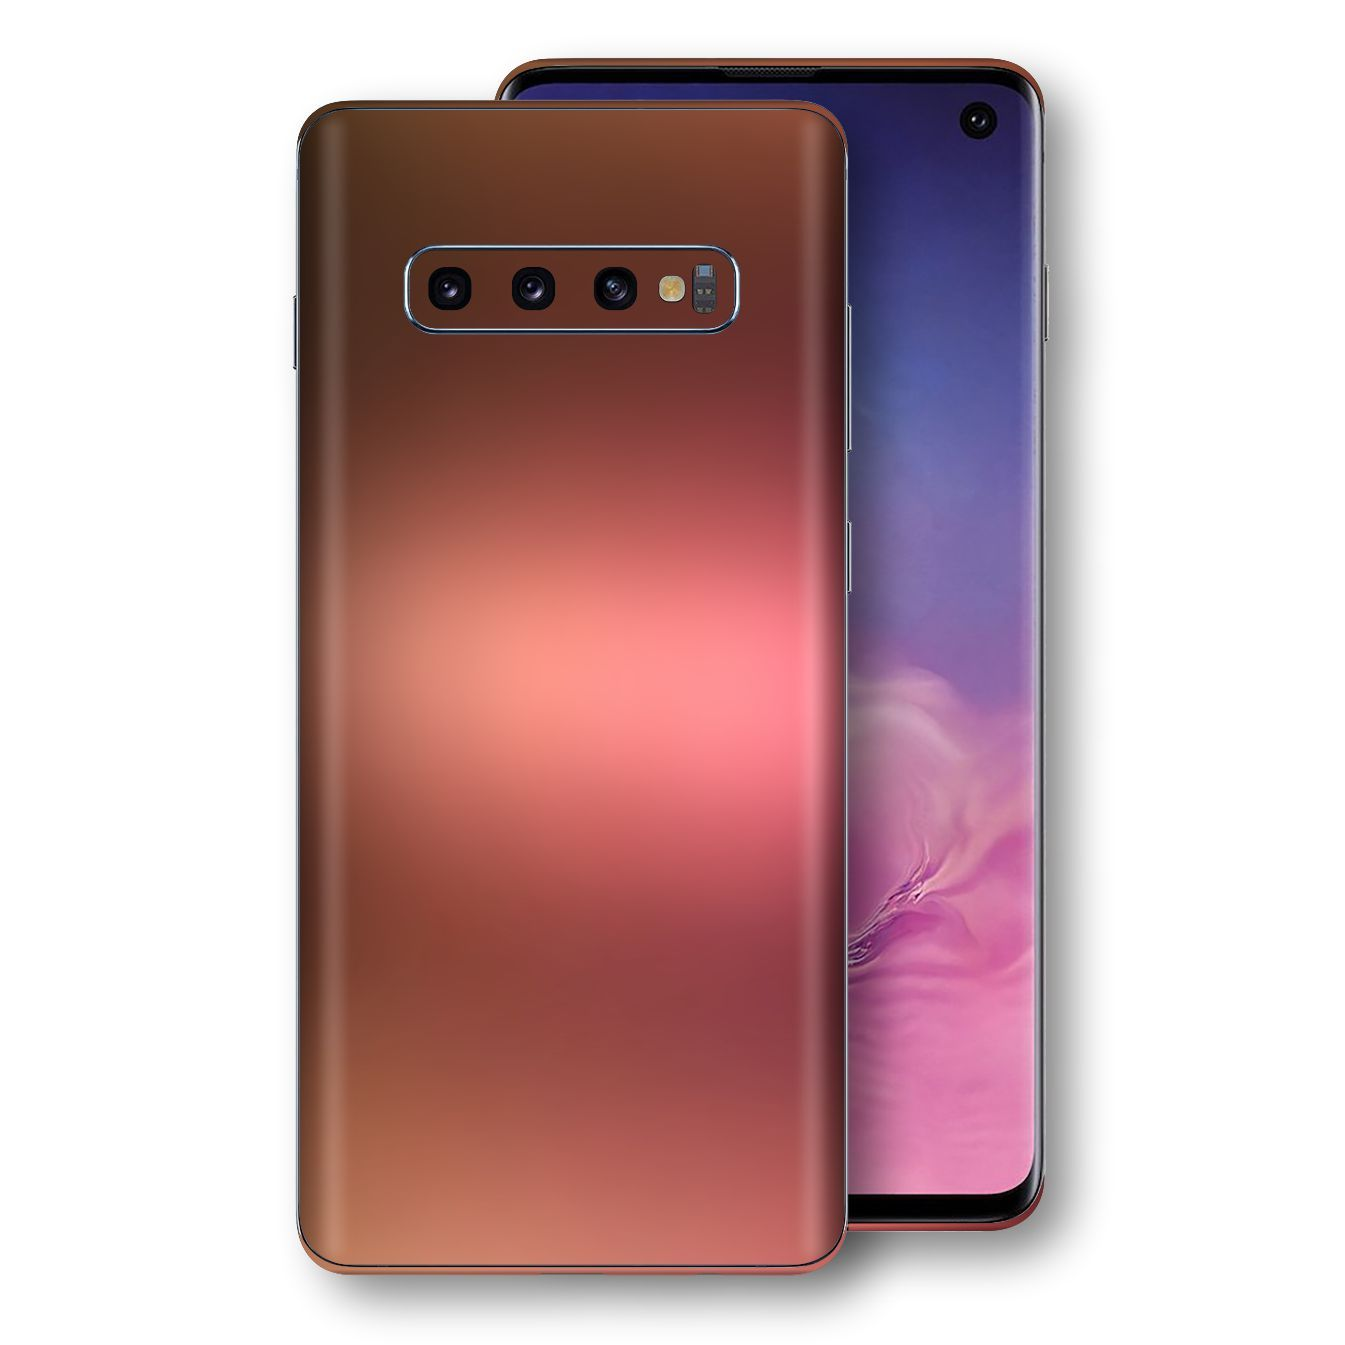 Samsung Galaxy S10 Chameleon Aubergine Bronze Skin Wrap Decal Cover by EasySkinz